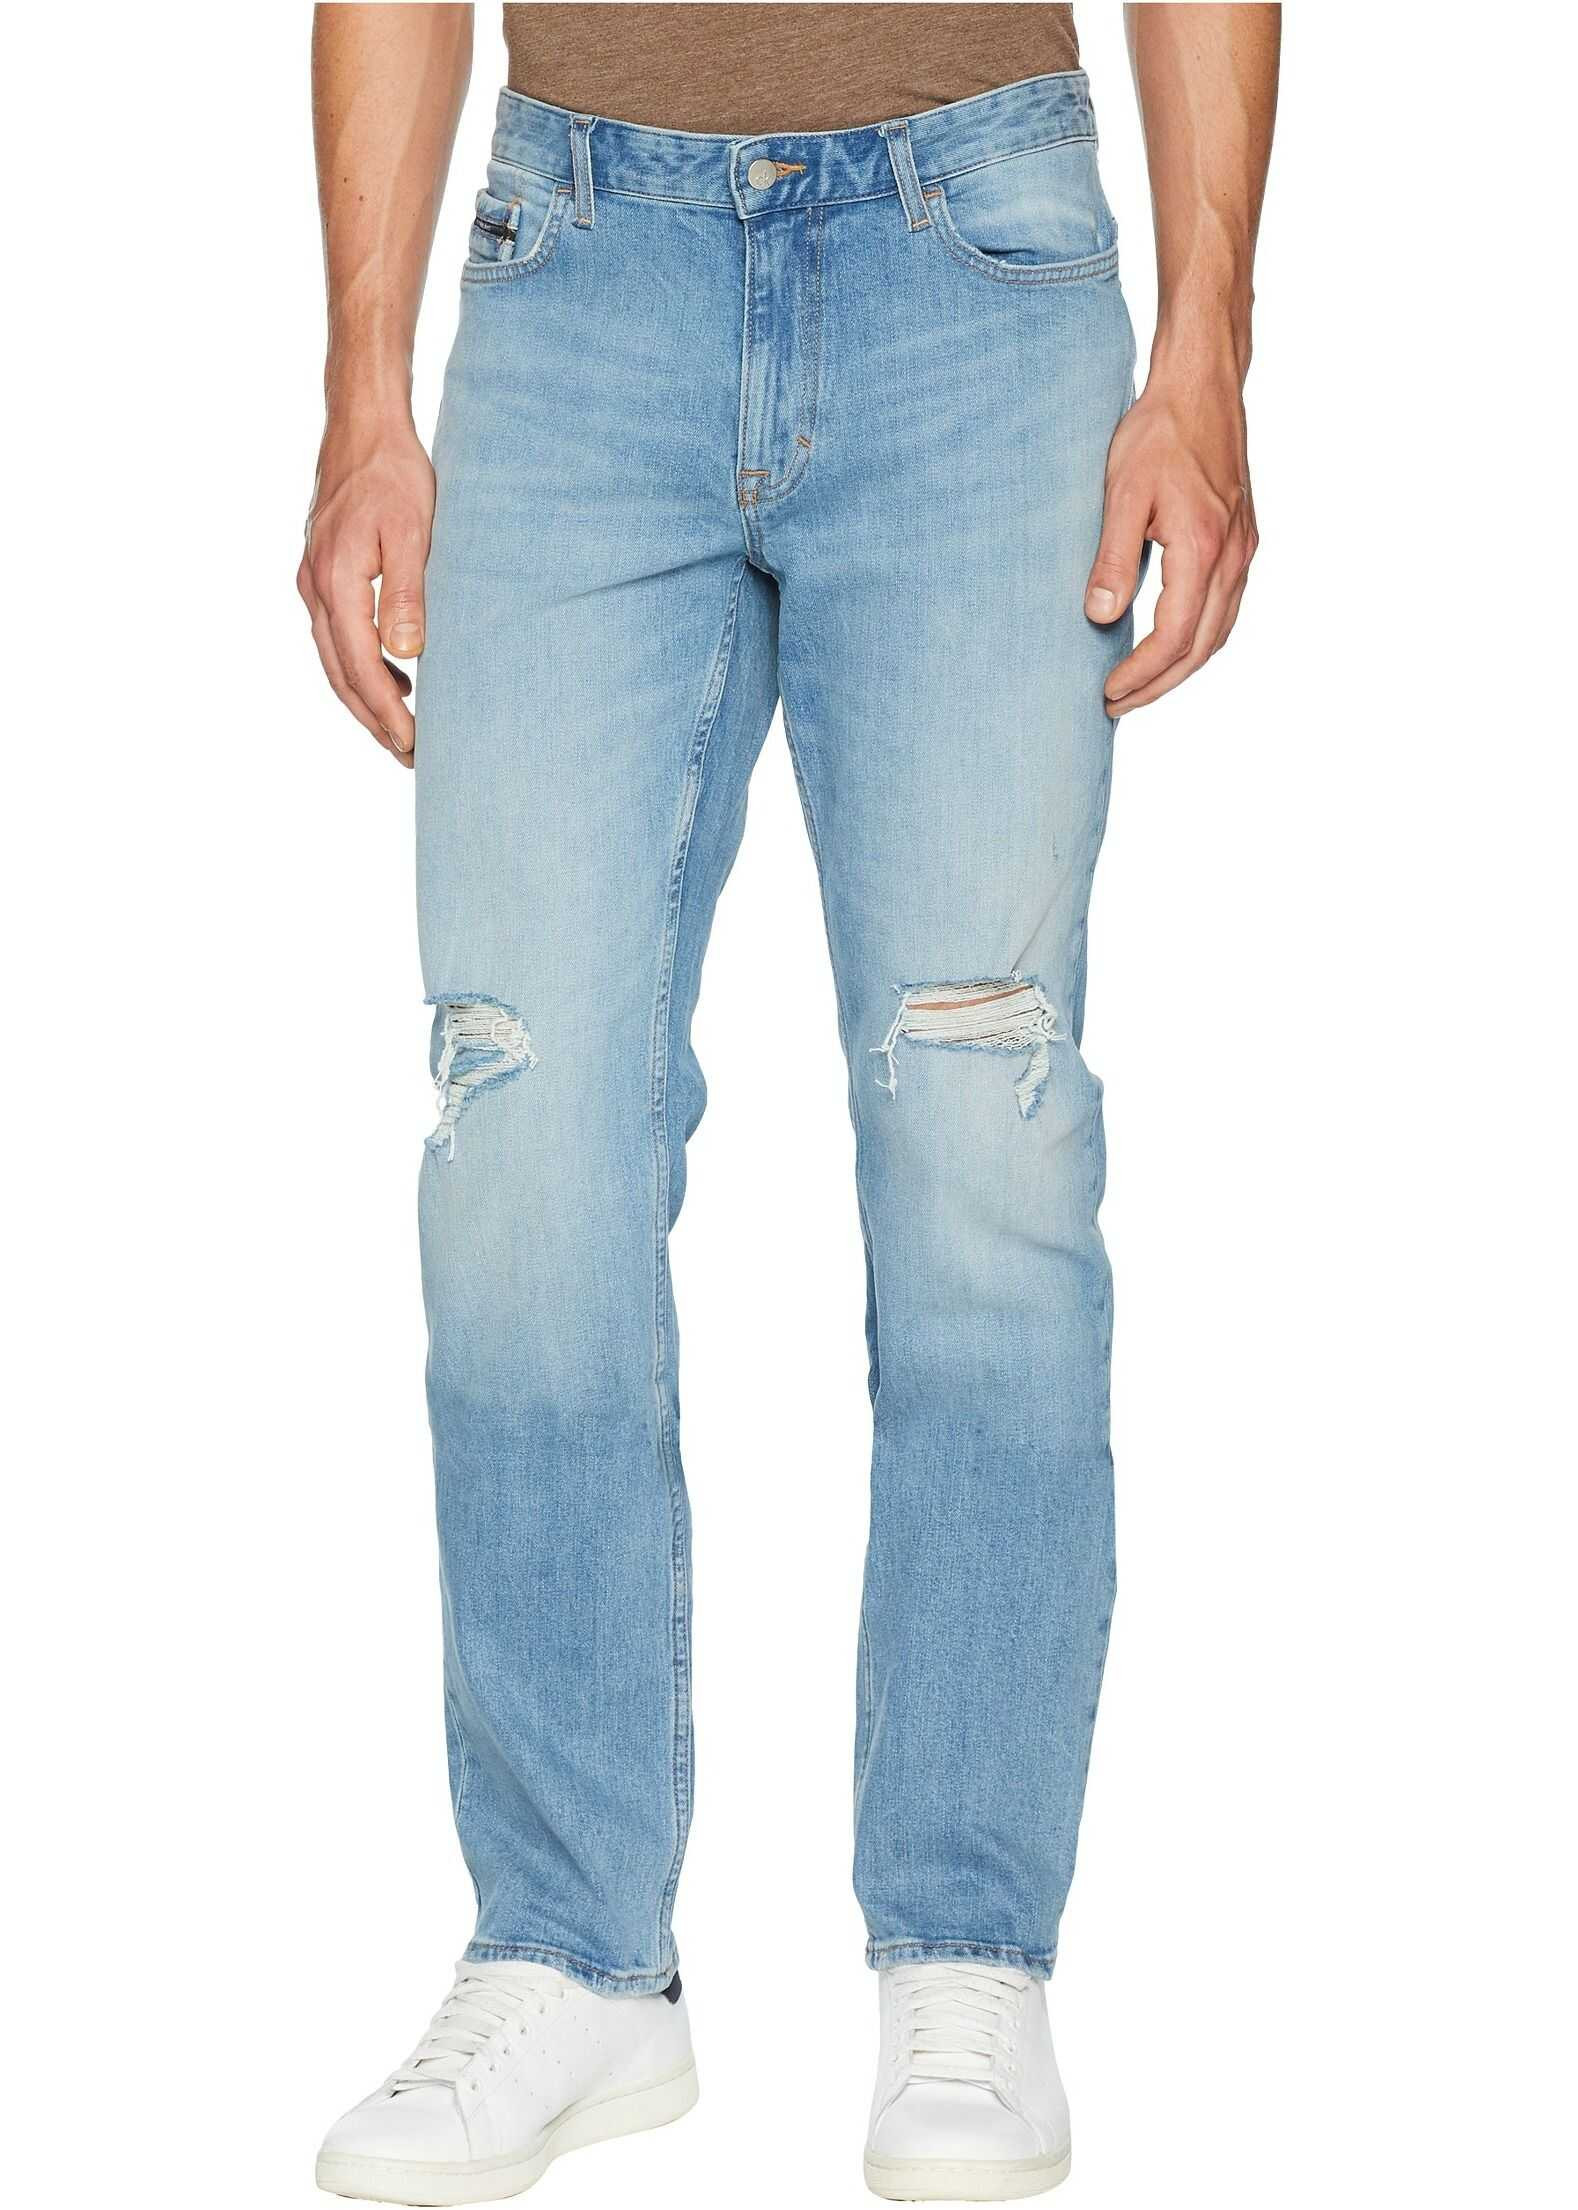 Calvin Klein Jeans Slim Straight Fit Jeans in Divisadero Blue Wash Divisadero Blue Wash